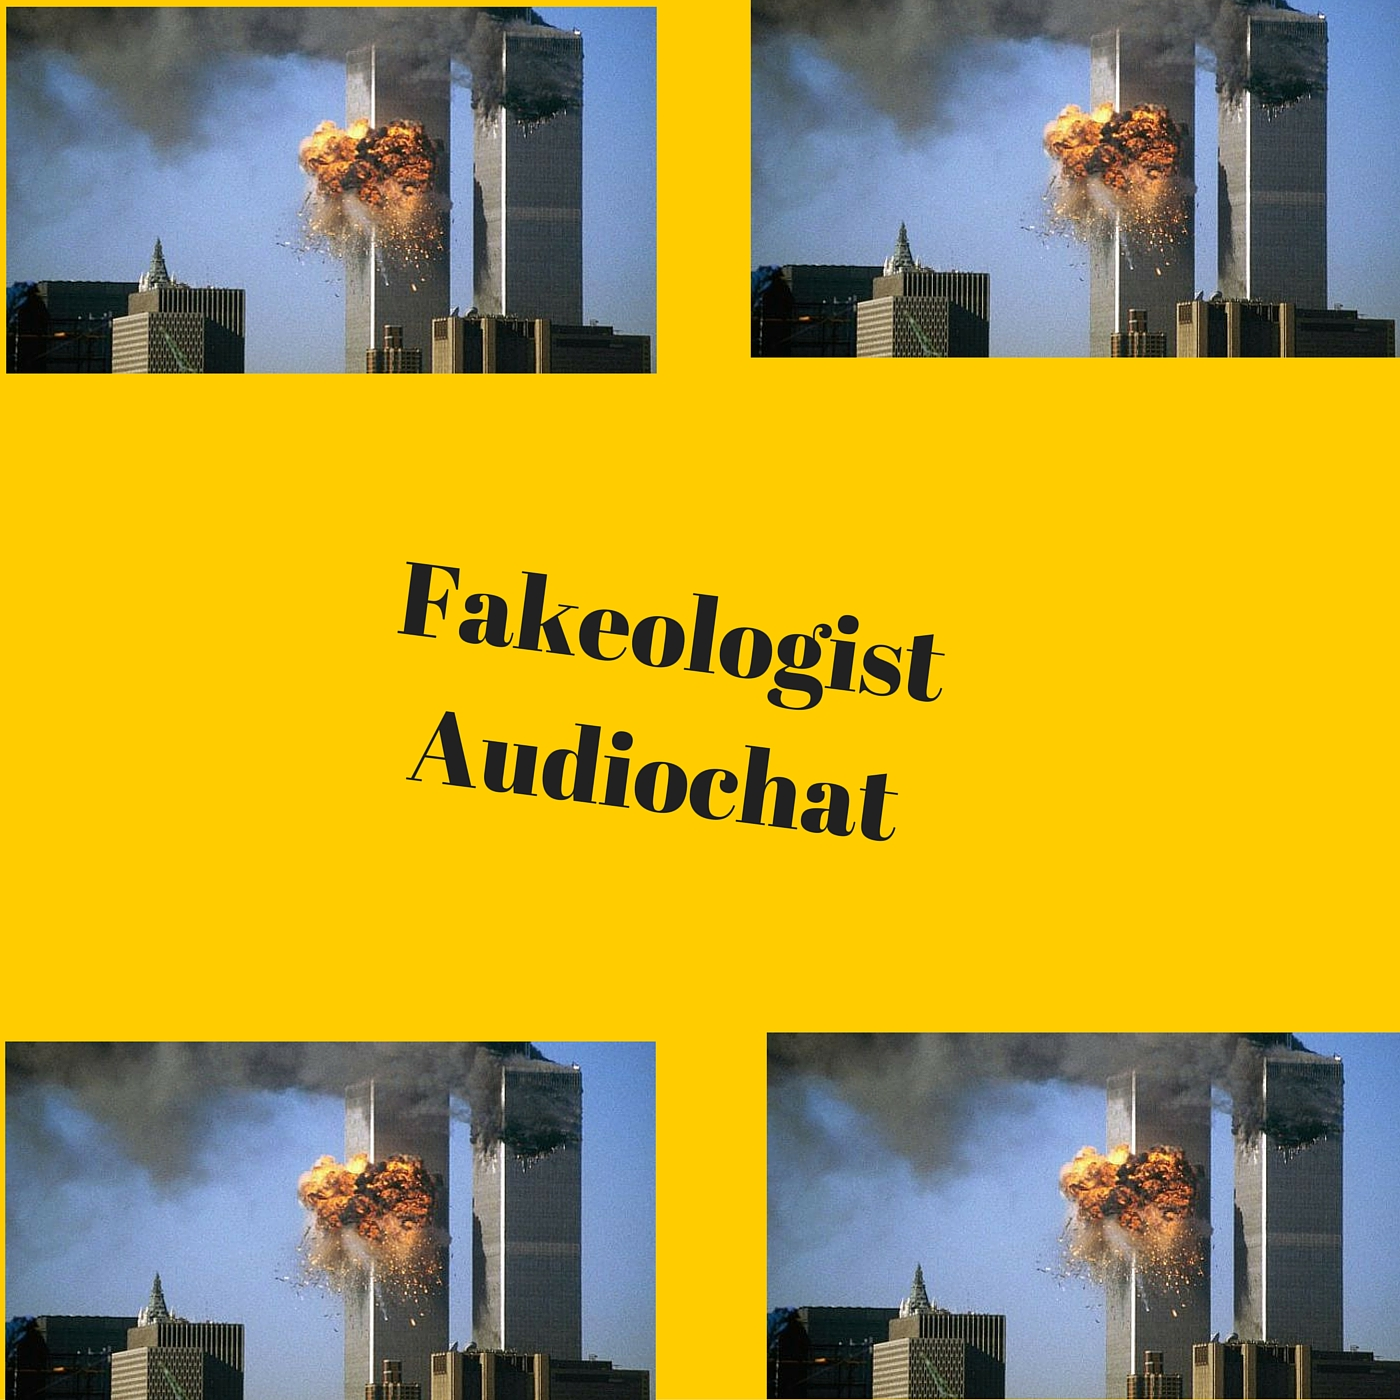 Audio Chats – Fakeologist.com